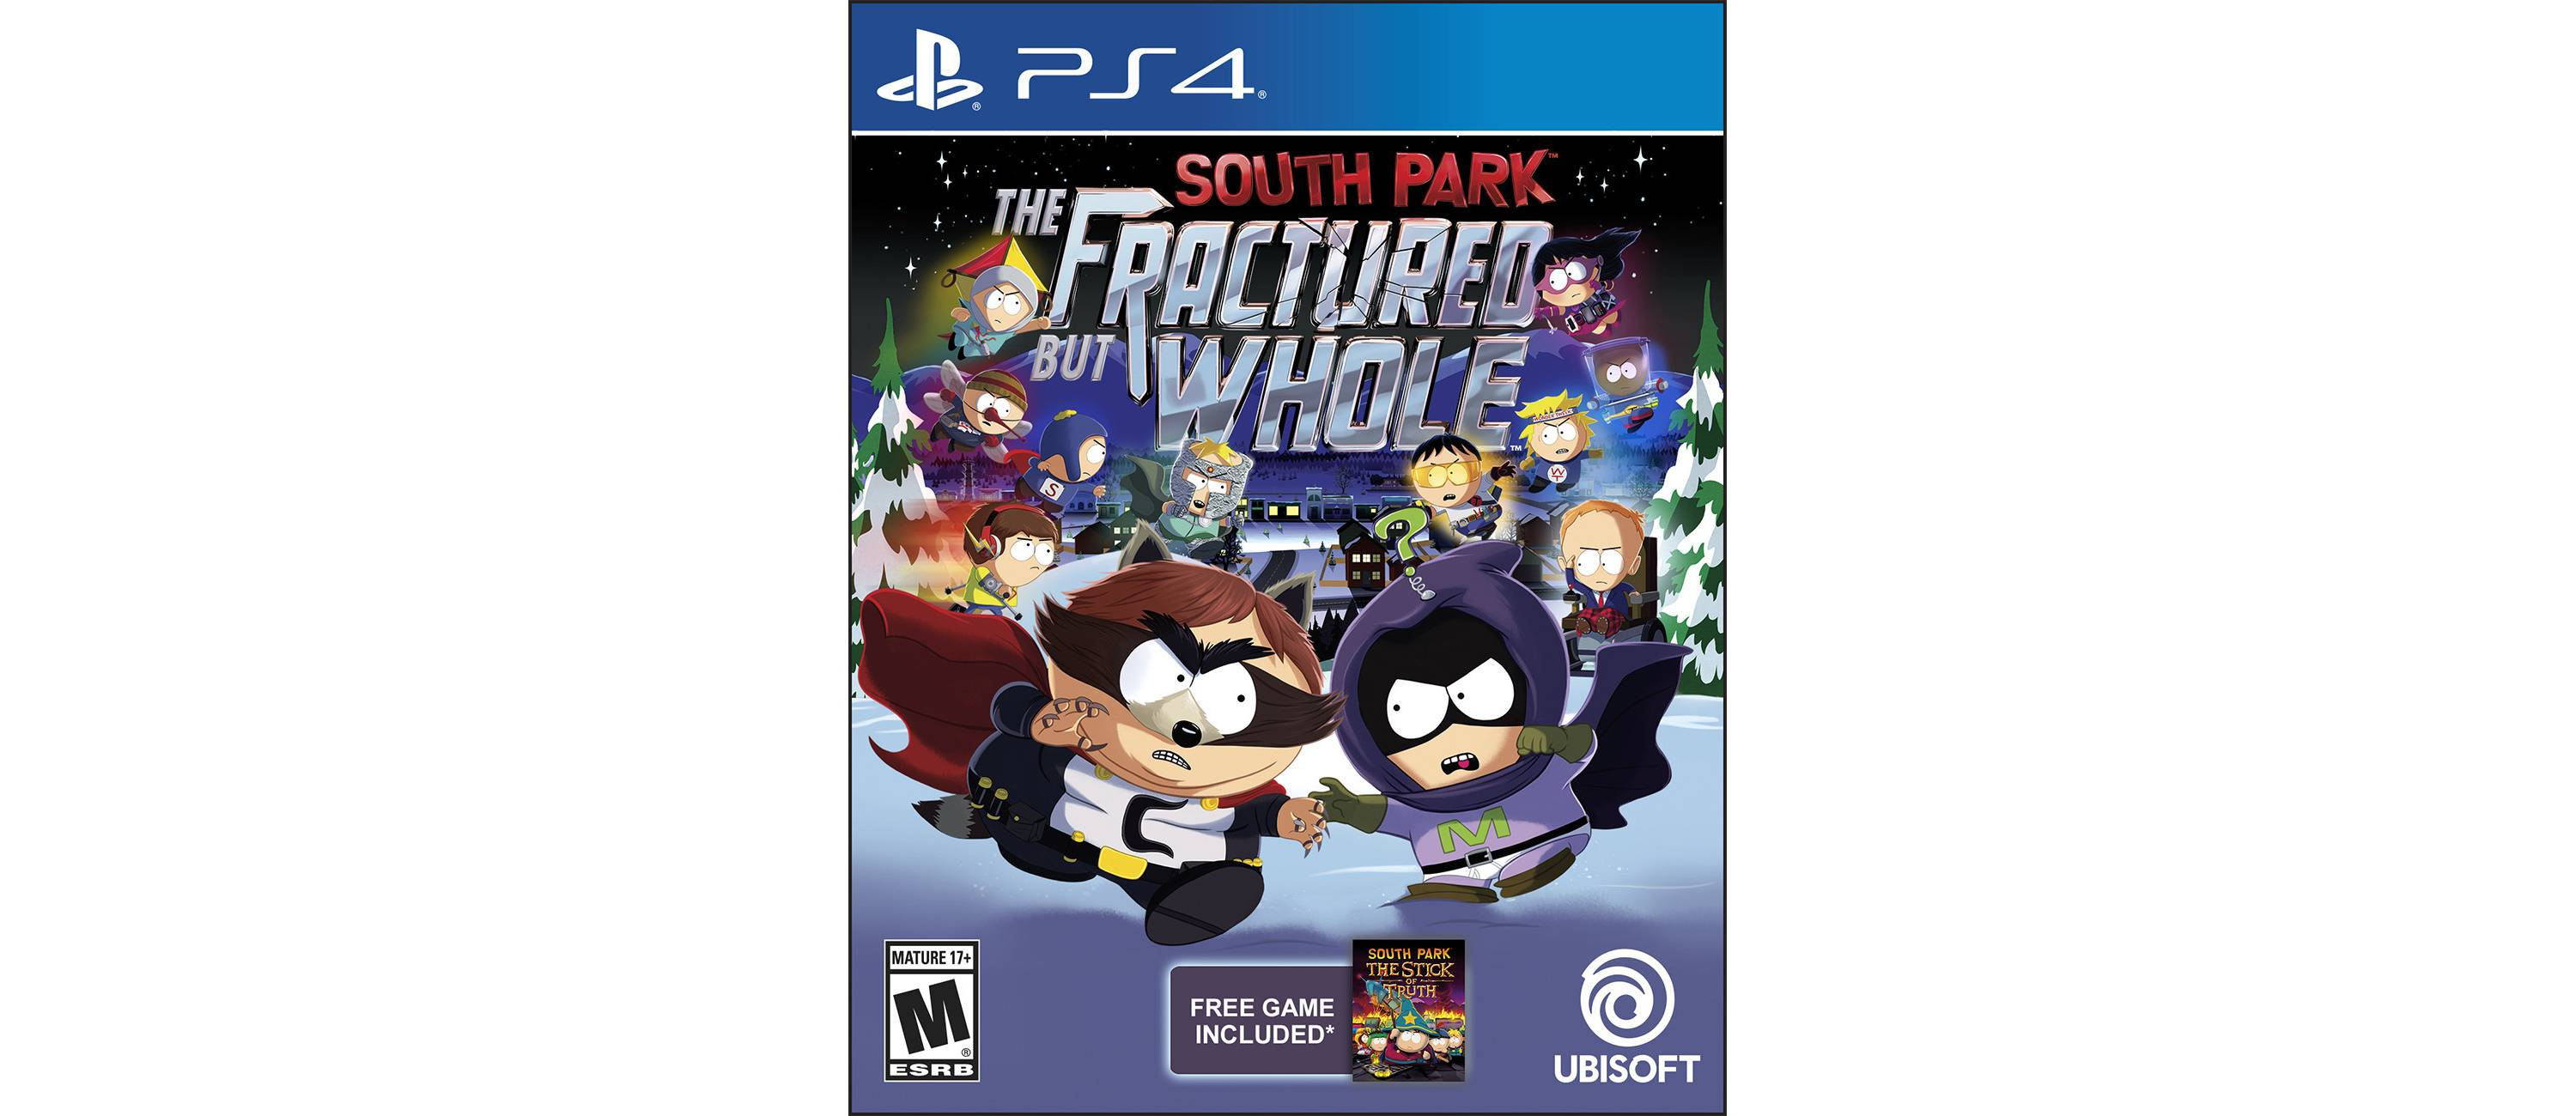 Stacking Target deals: 2x South Park Fractured But Whole, Paper towel fillers, $50 GC, for $82 + tax at Target